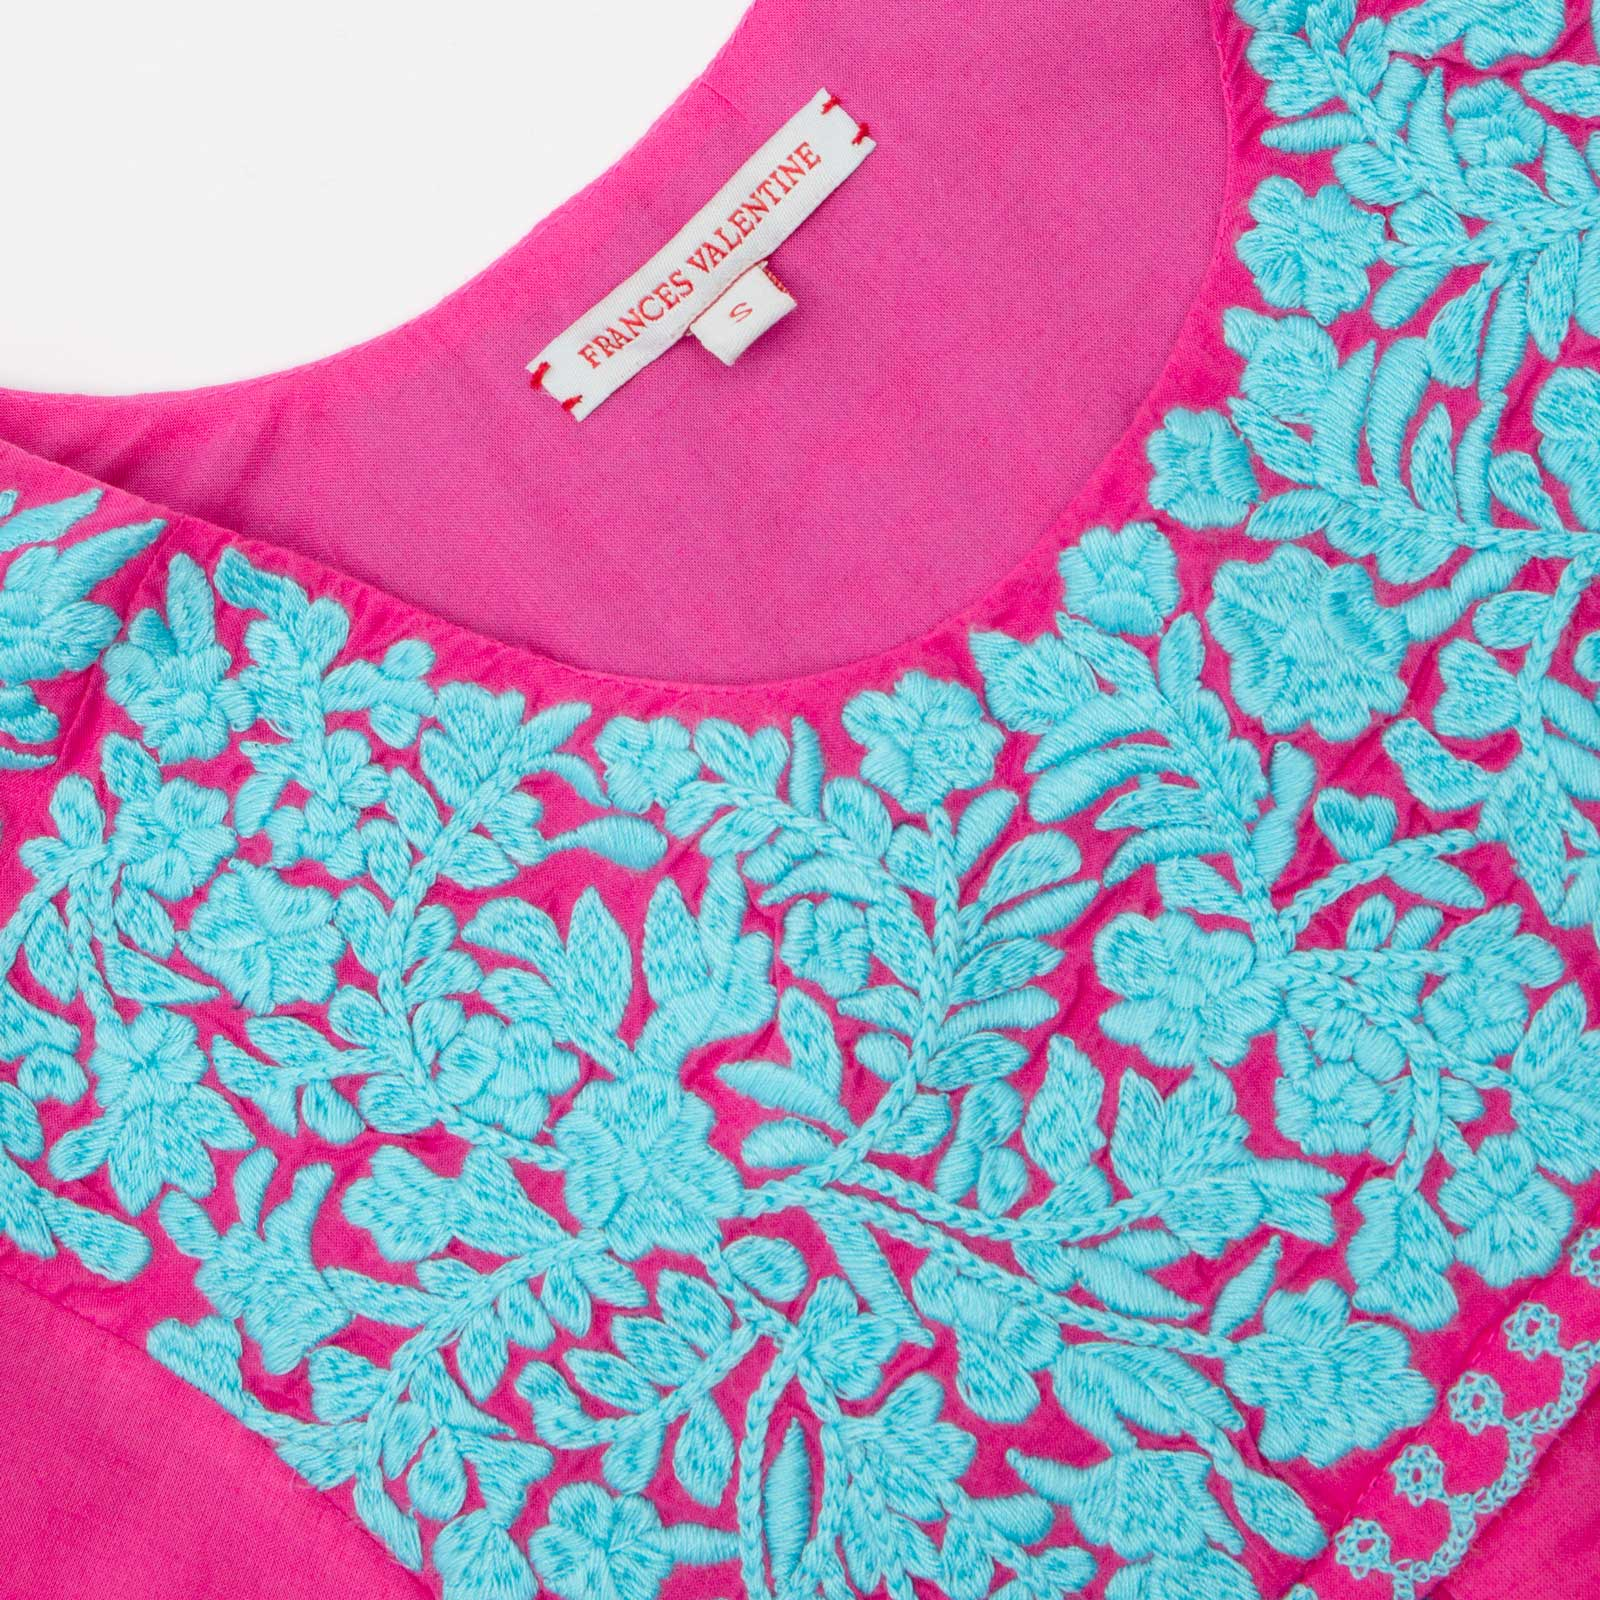 Floral Embroidered Lace Top Pink Light Blue